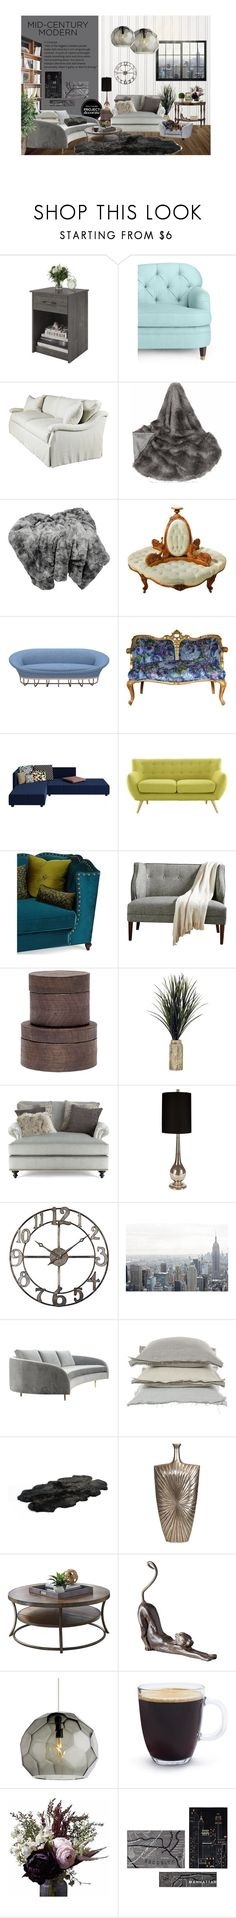 """Mid-Century Modern - Grey Tones"" by madeleinebabes ❤ liked on Polyvore featuring interior, interiors, interior design, home, home decor, interior decorating, Altra, Kate Spade, Lillian August and Cappellini"